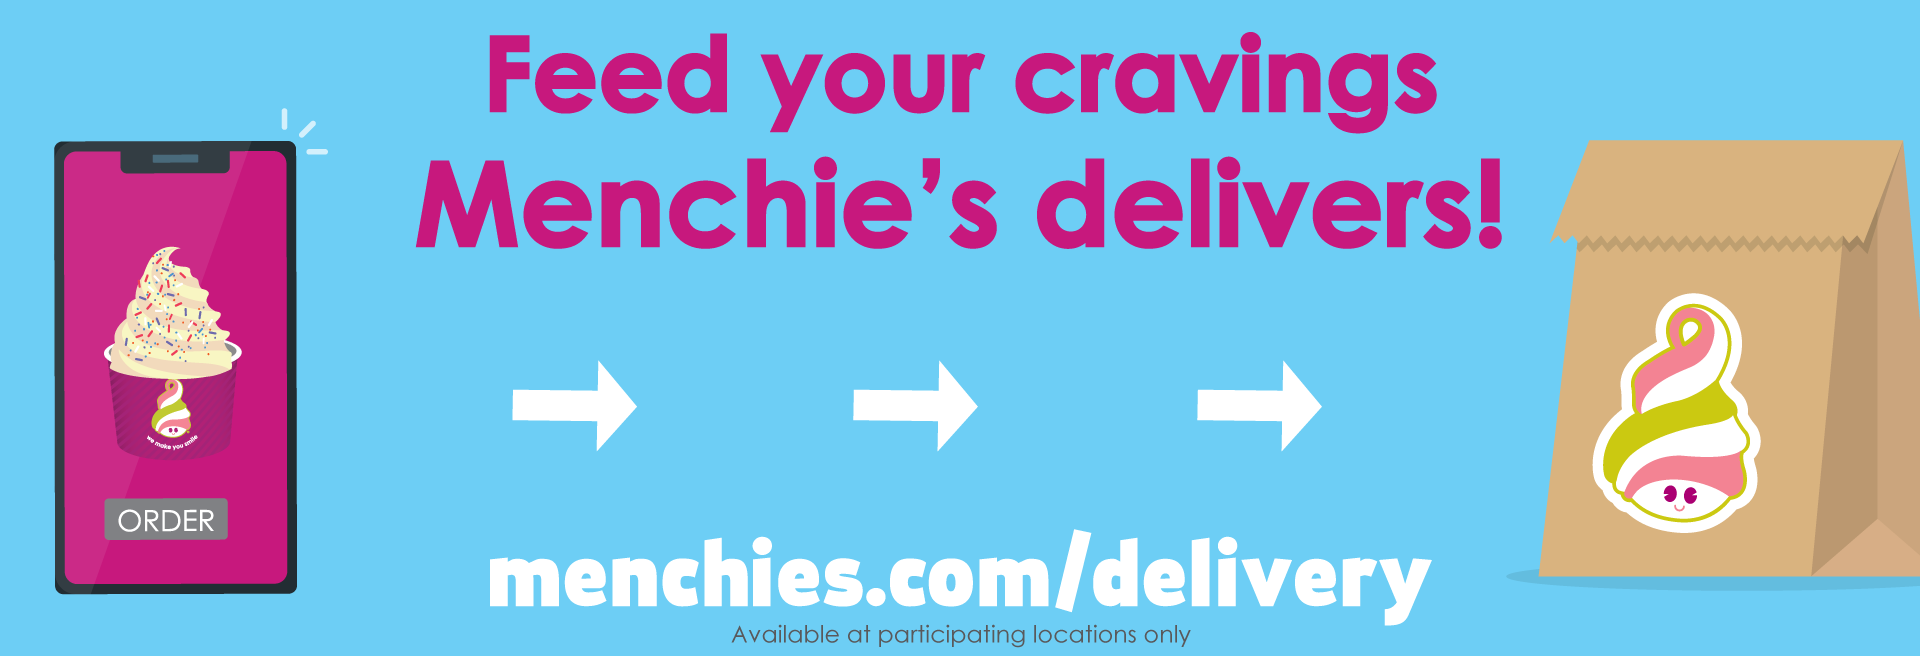 Order your favorite Menchie's flavors and toppings through one of our delivery partners or through our app and have the mix you are craving delivered straight to your door.